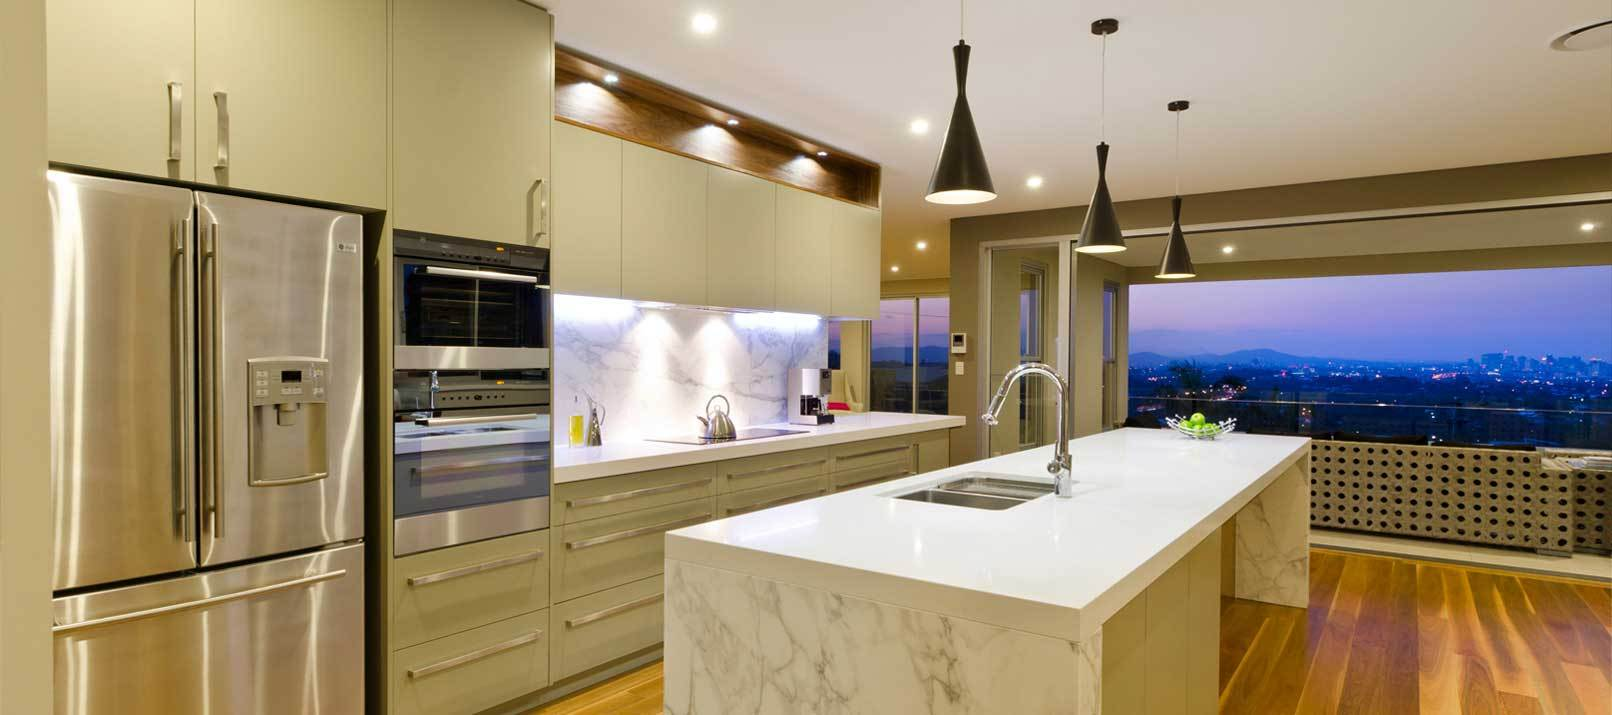 How to effectively plan your new kitchen designer kitchens for What is new in kitchen design